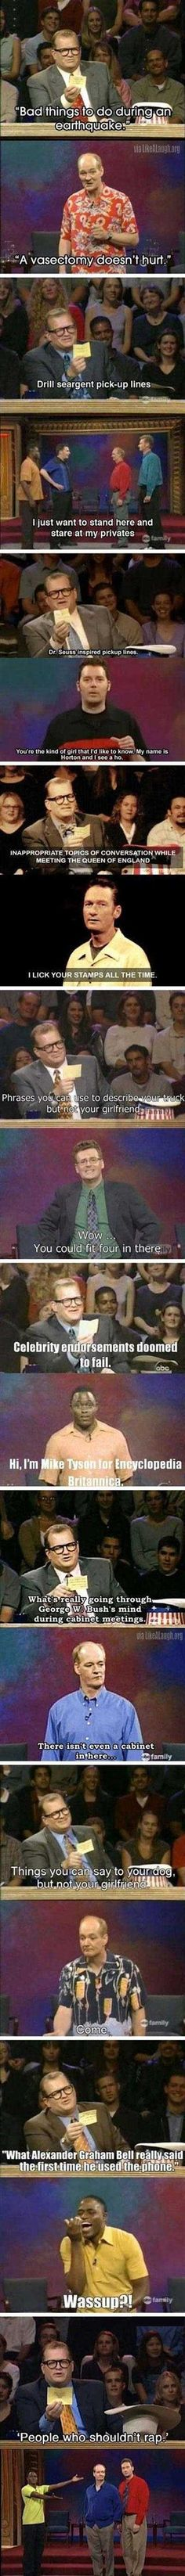 Hilarious answers